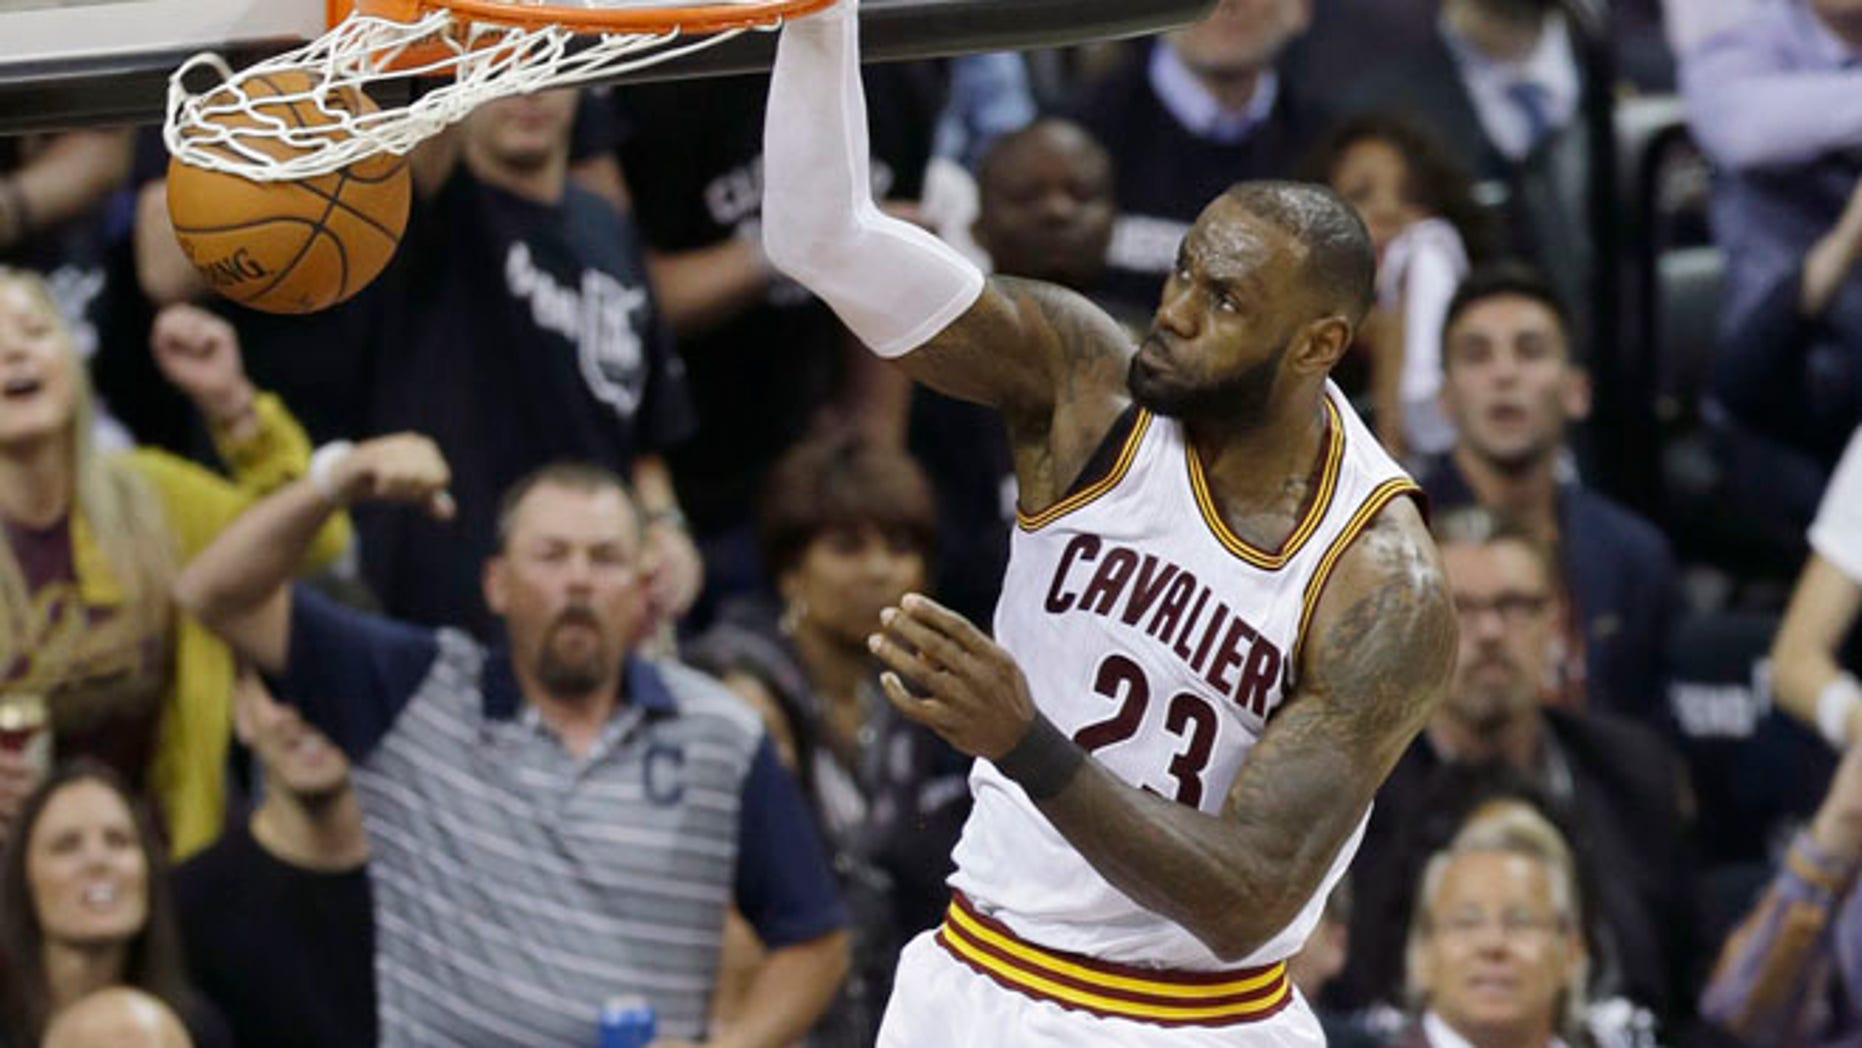 Cleveland Cavaliers forward LeBron James dunks against the Golden State Warriors during the first half of Game 4 of basketball's NBA Finals in Cleveland.